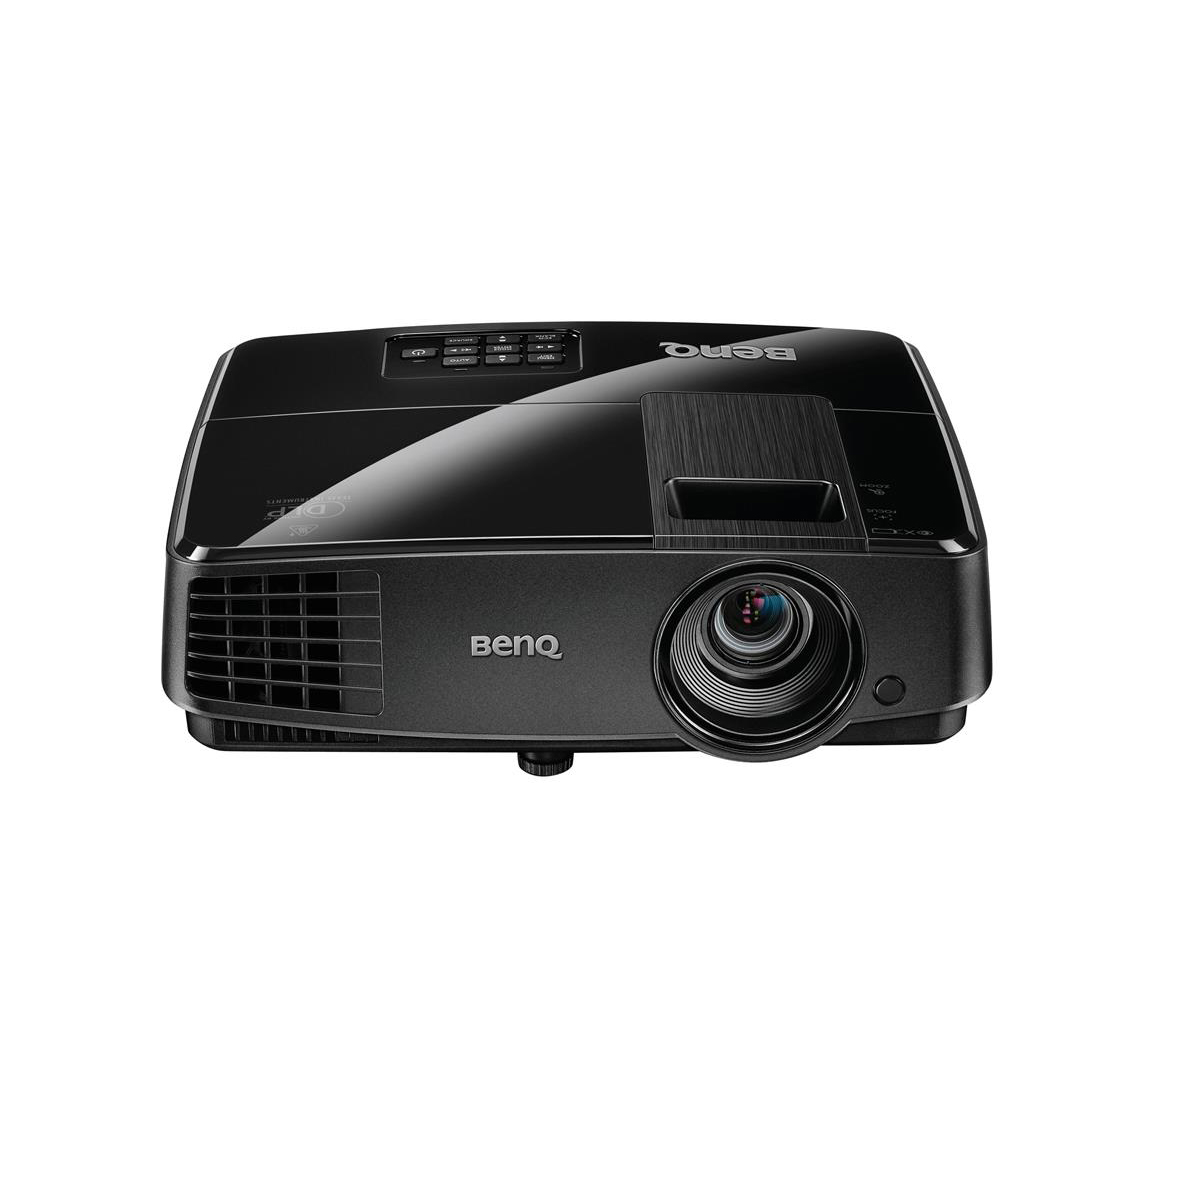 BenQ MX507 Projector XGA 3200 ANSI Lumens 13000-1 Contrast Ratio Black Ref MX507